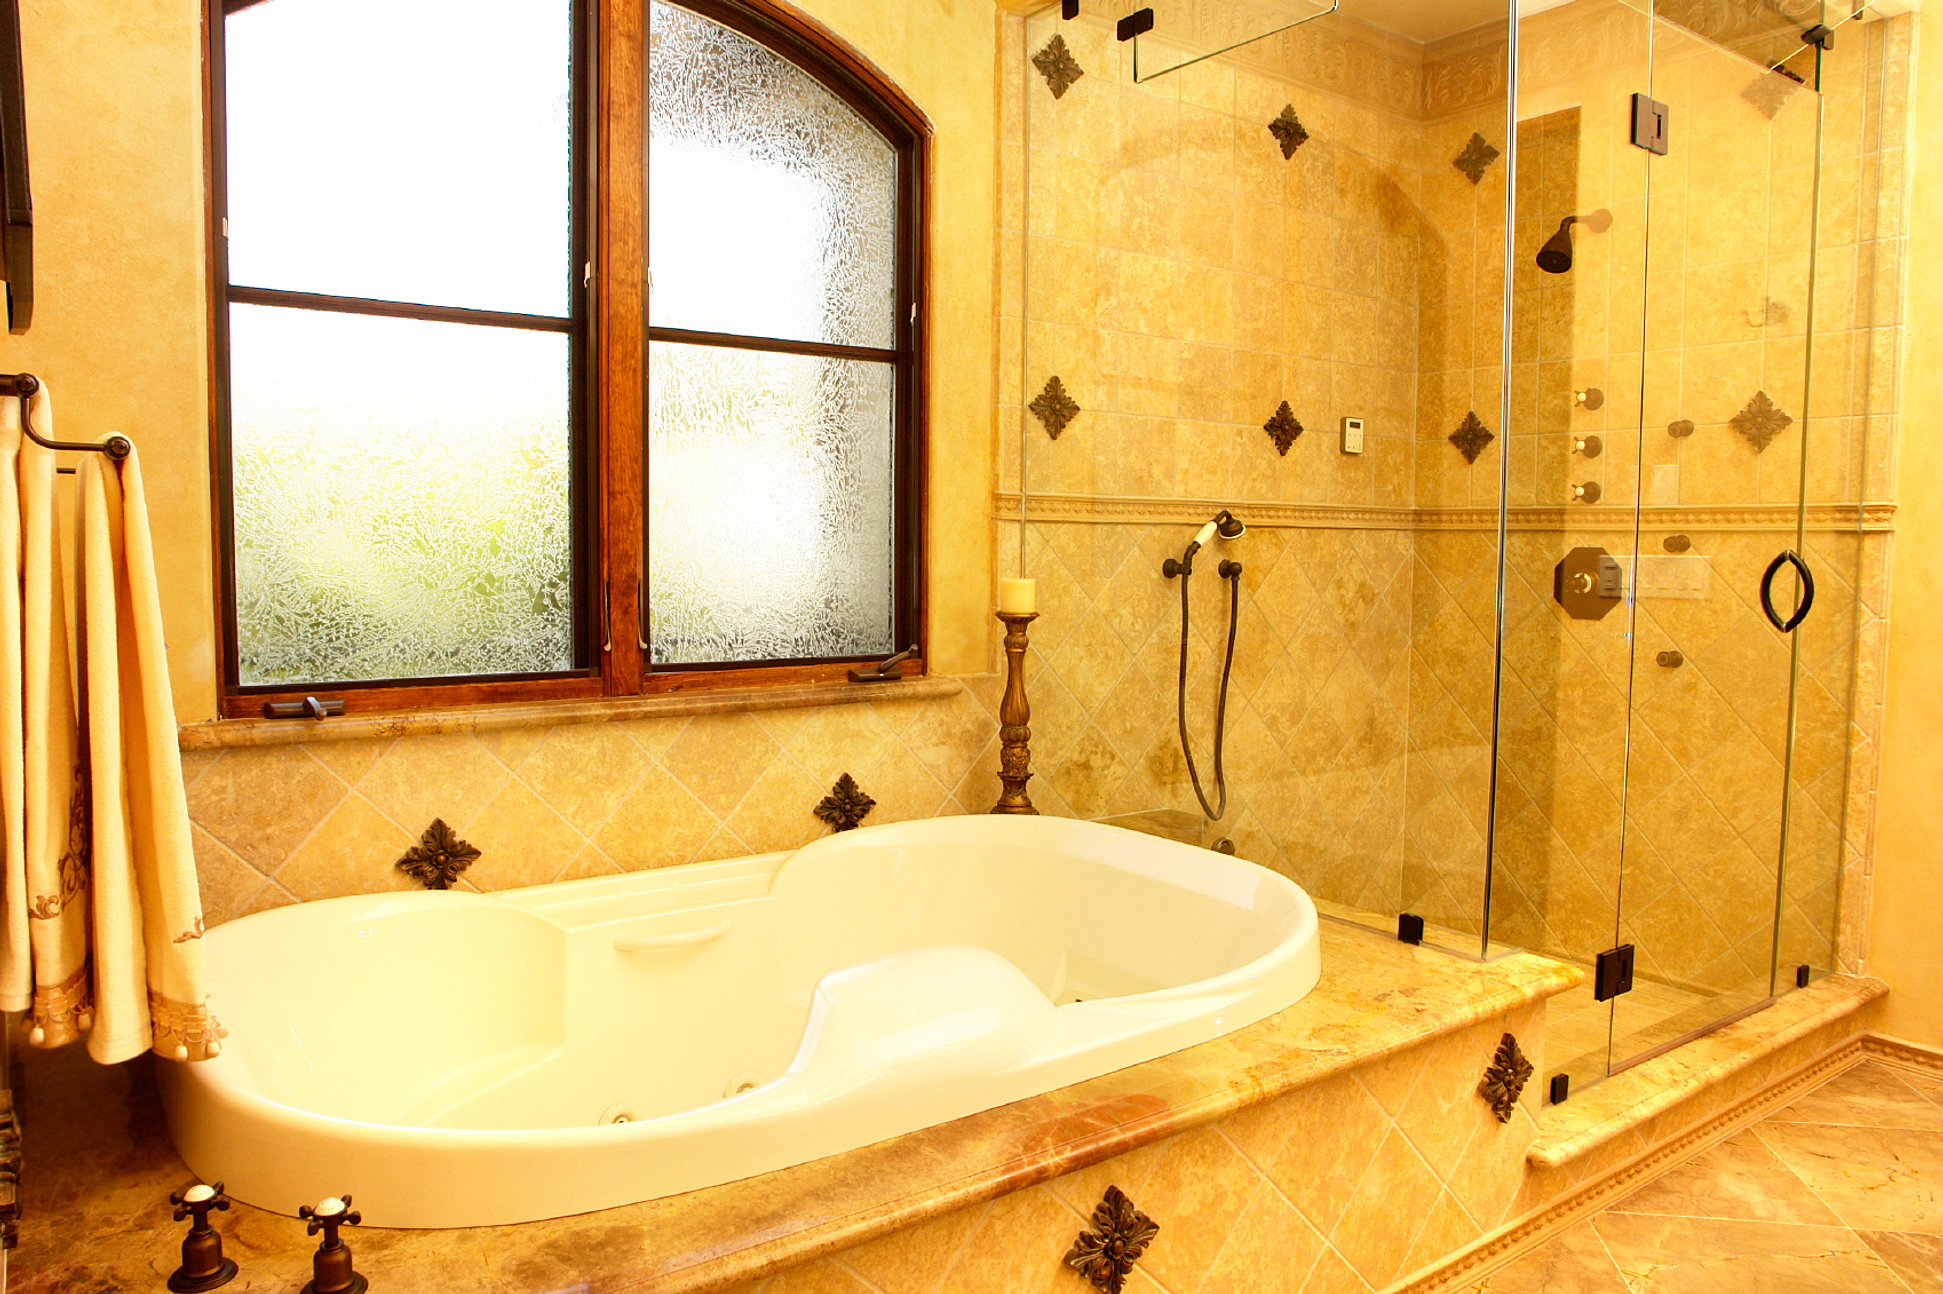 interior design houston - Bathroom Design Houston